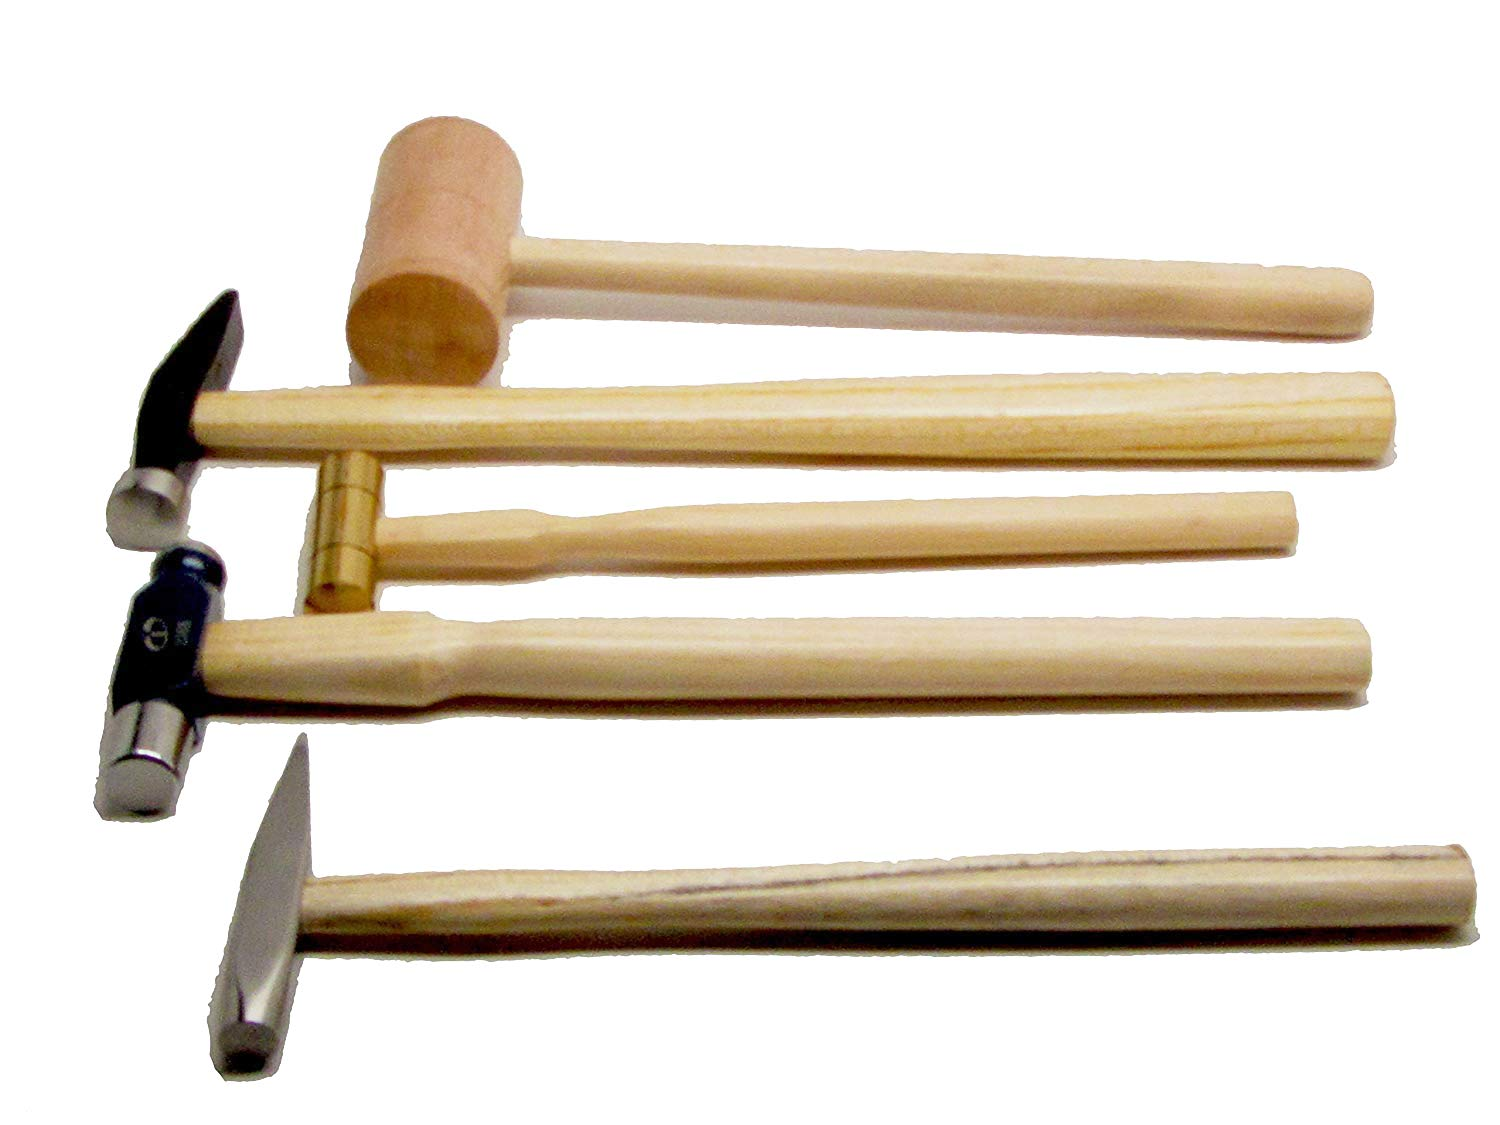 5 Piece Jewelers Hammer Set, Professional Kit Including 2 Oz Ball Peen, 9 Oz Goldsmith, 2 Oz Brass, Rivet, and 3 Oz Wooden Mallet UJ Ramelson Co